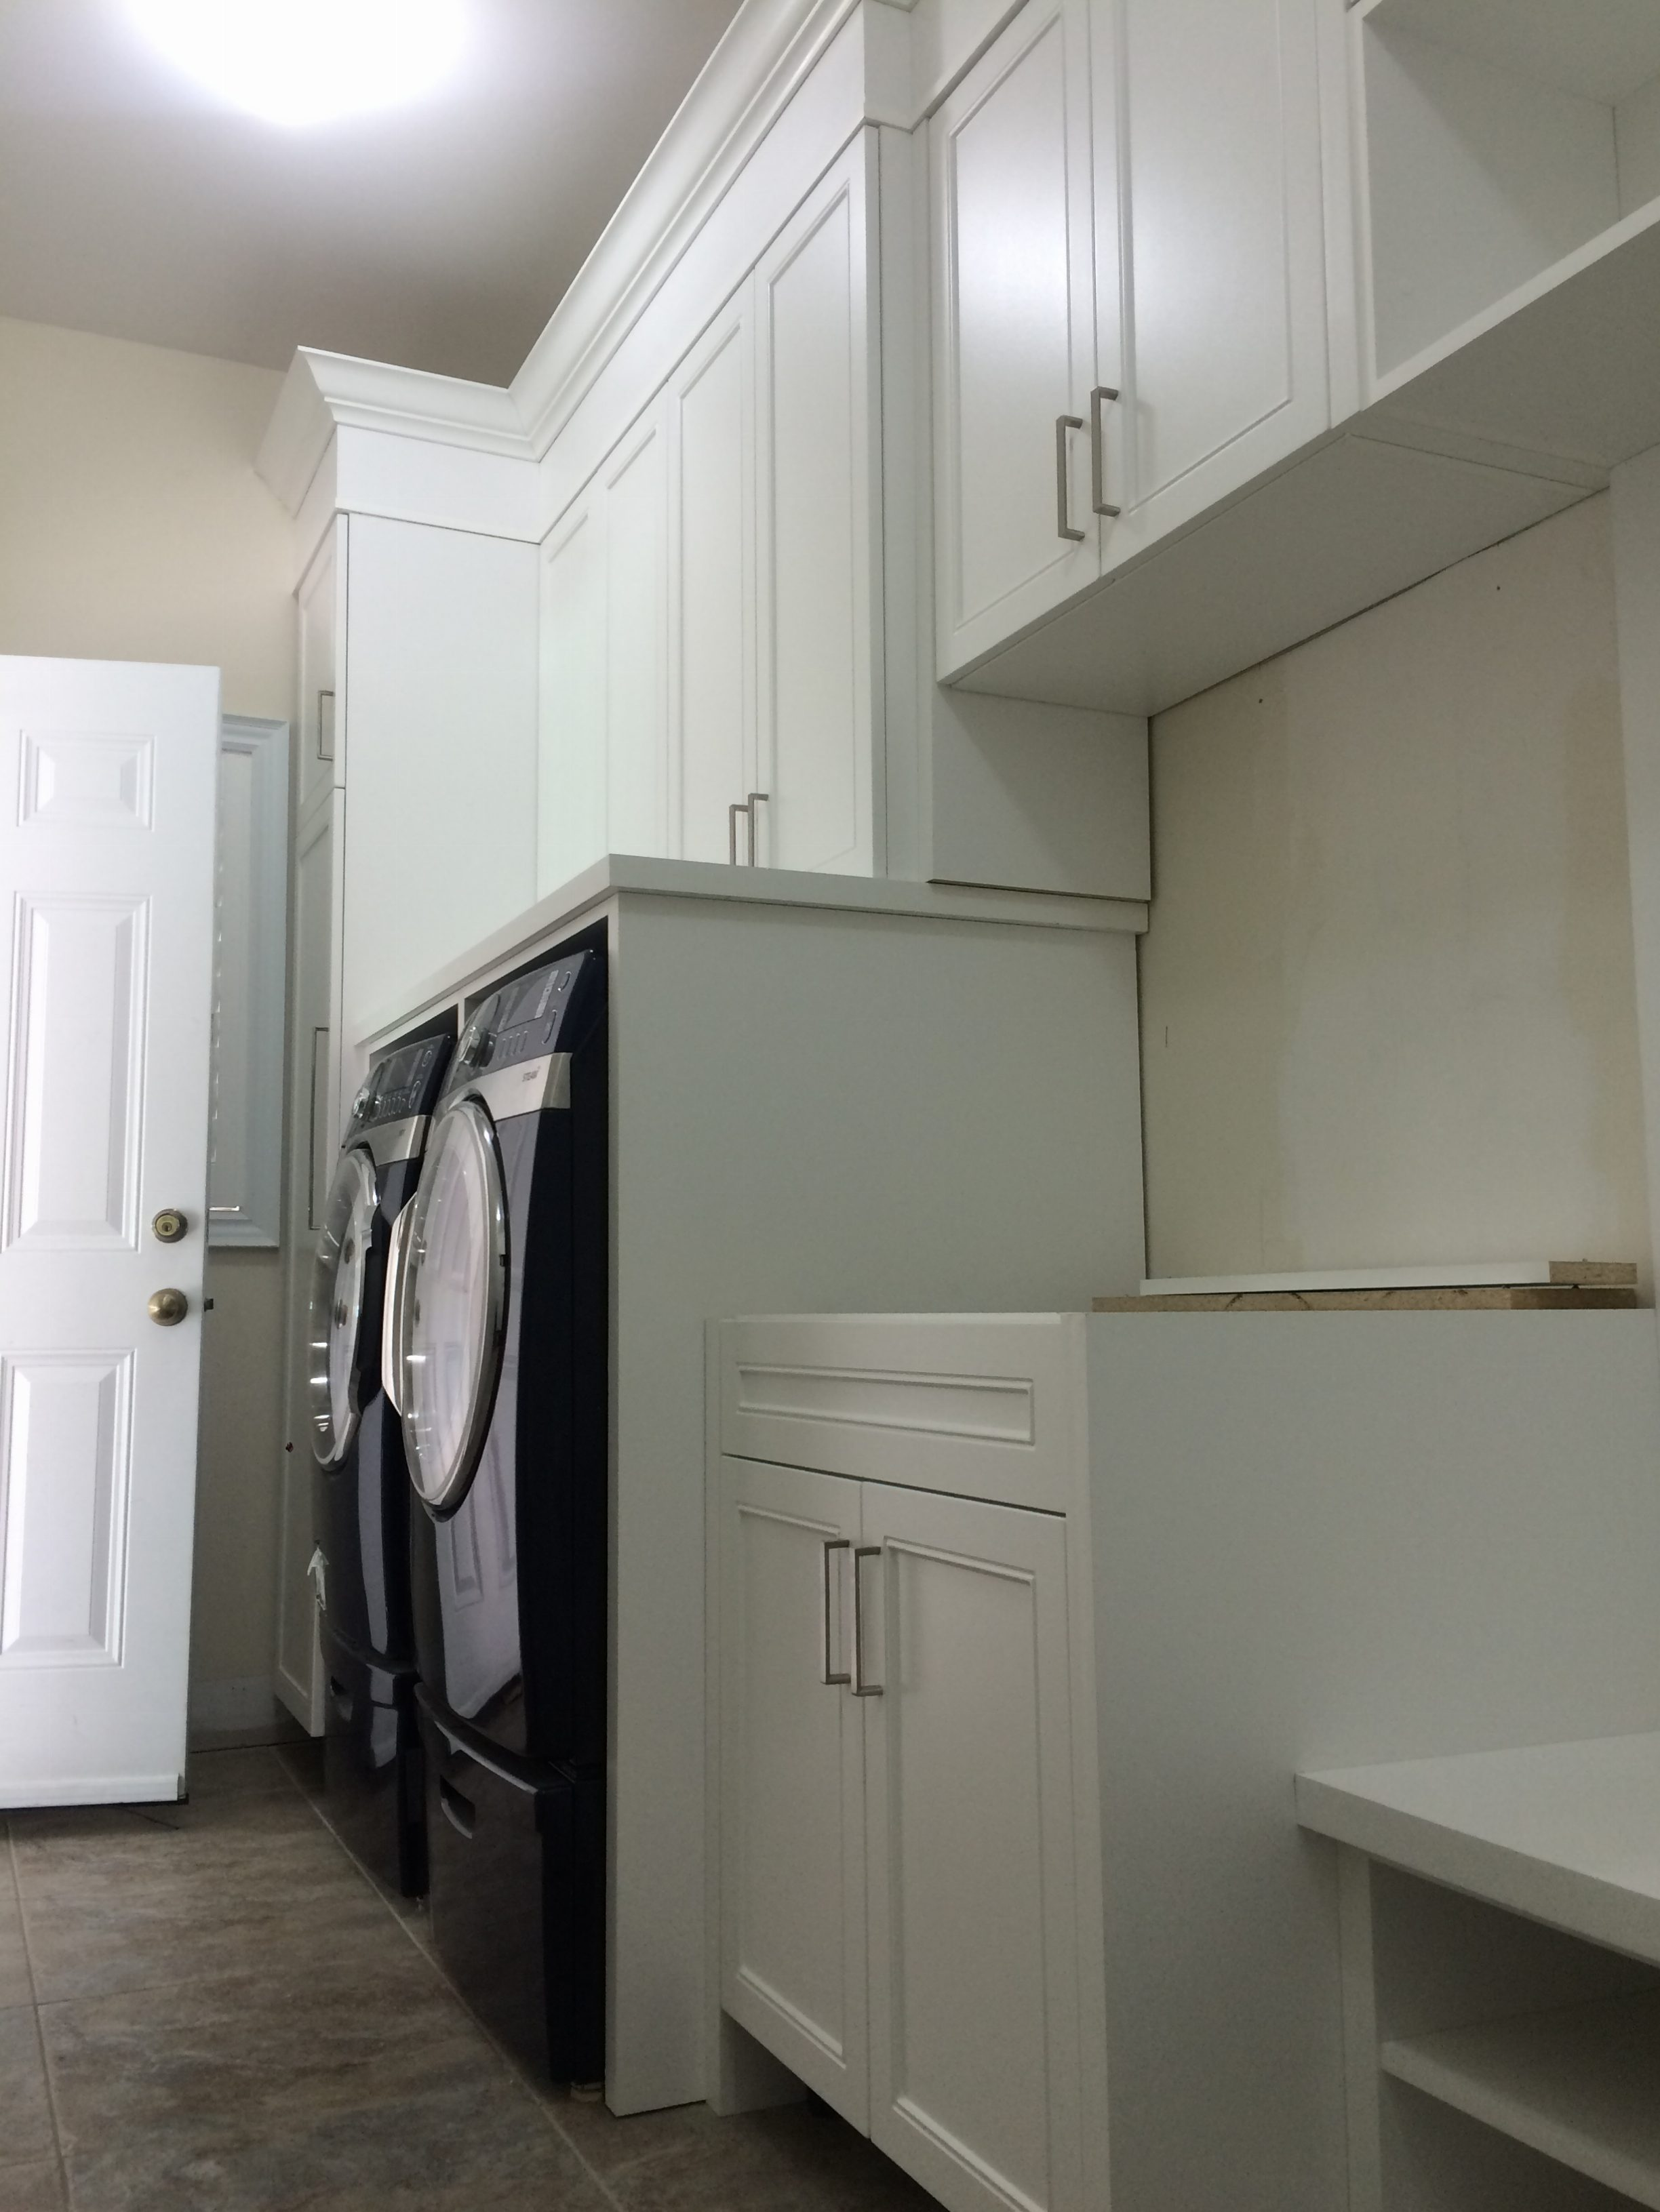 Laundry room picture 4